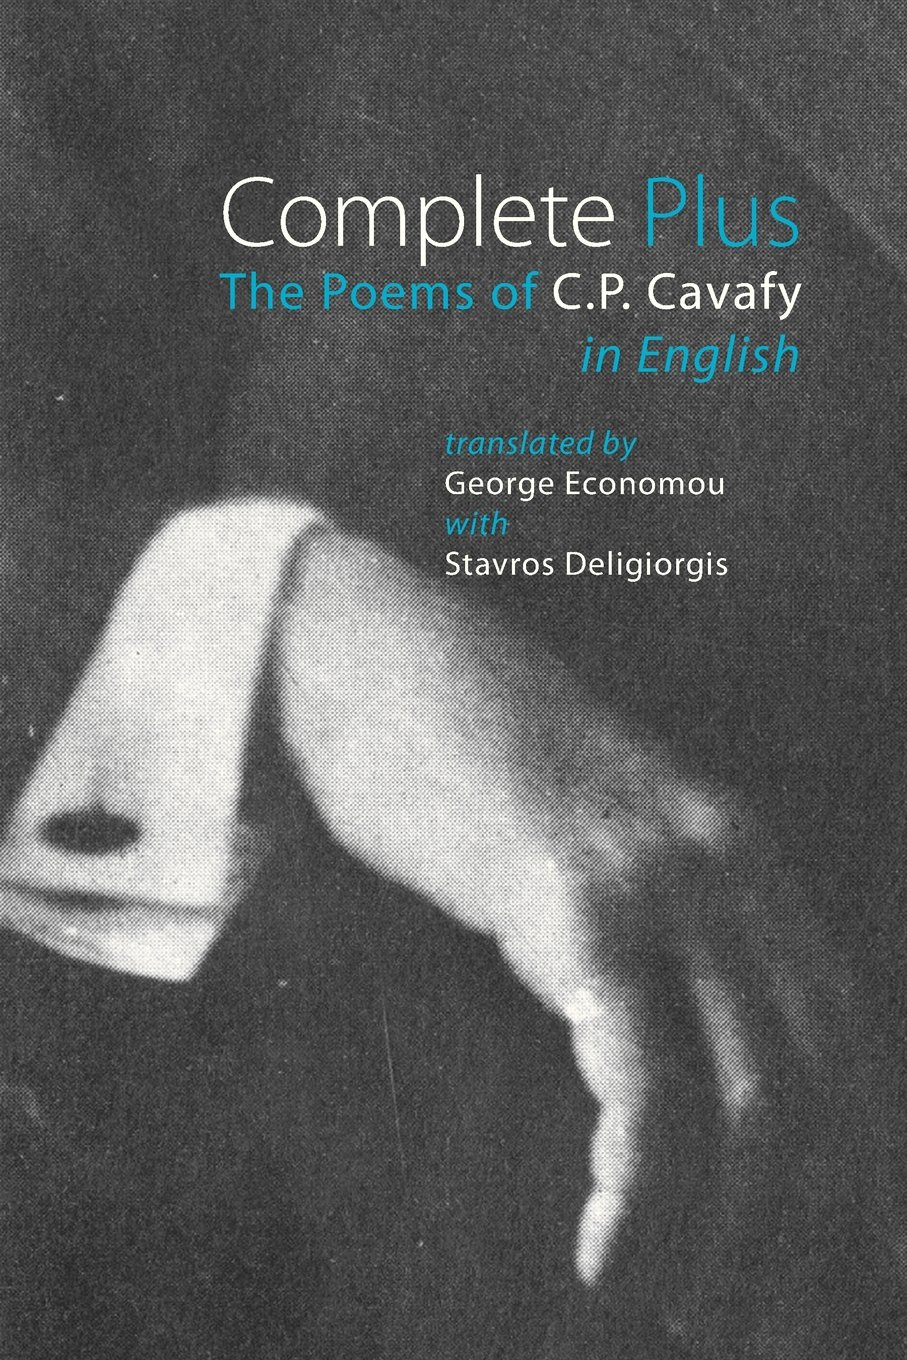 cavafy complete plues.jpg